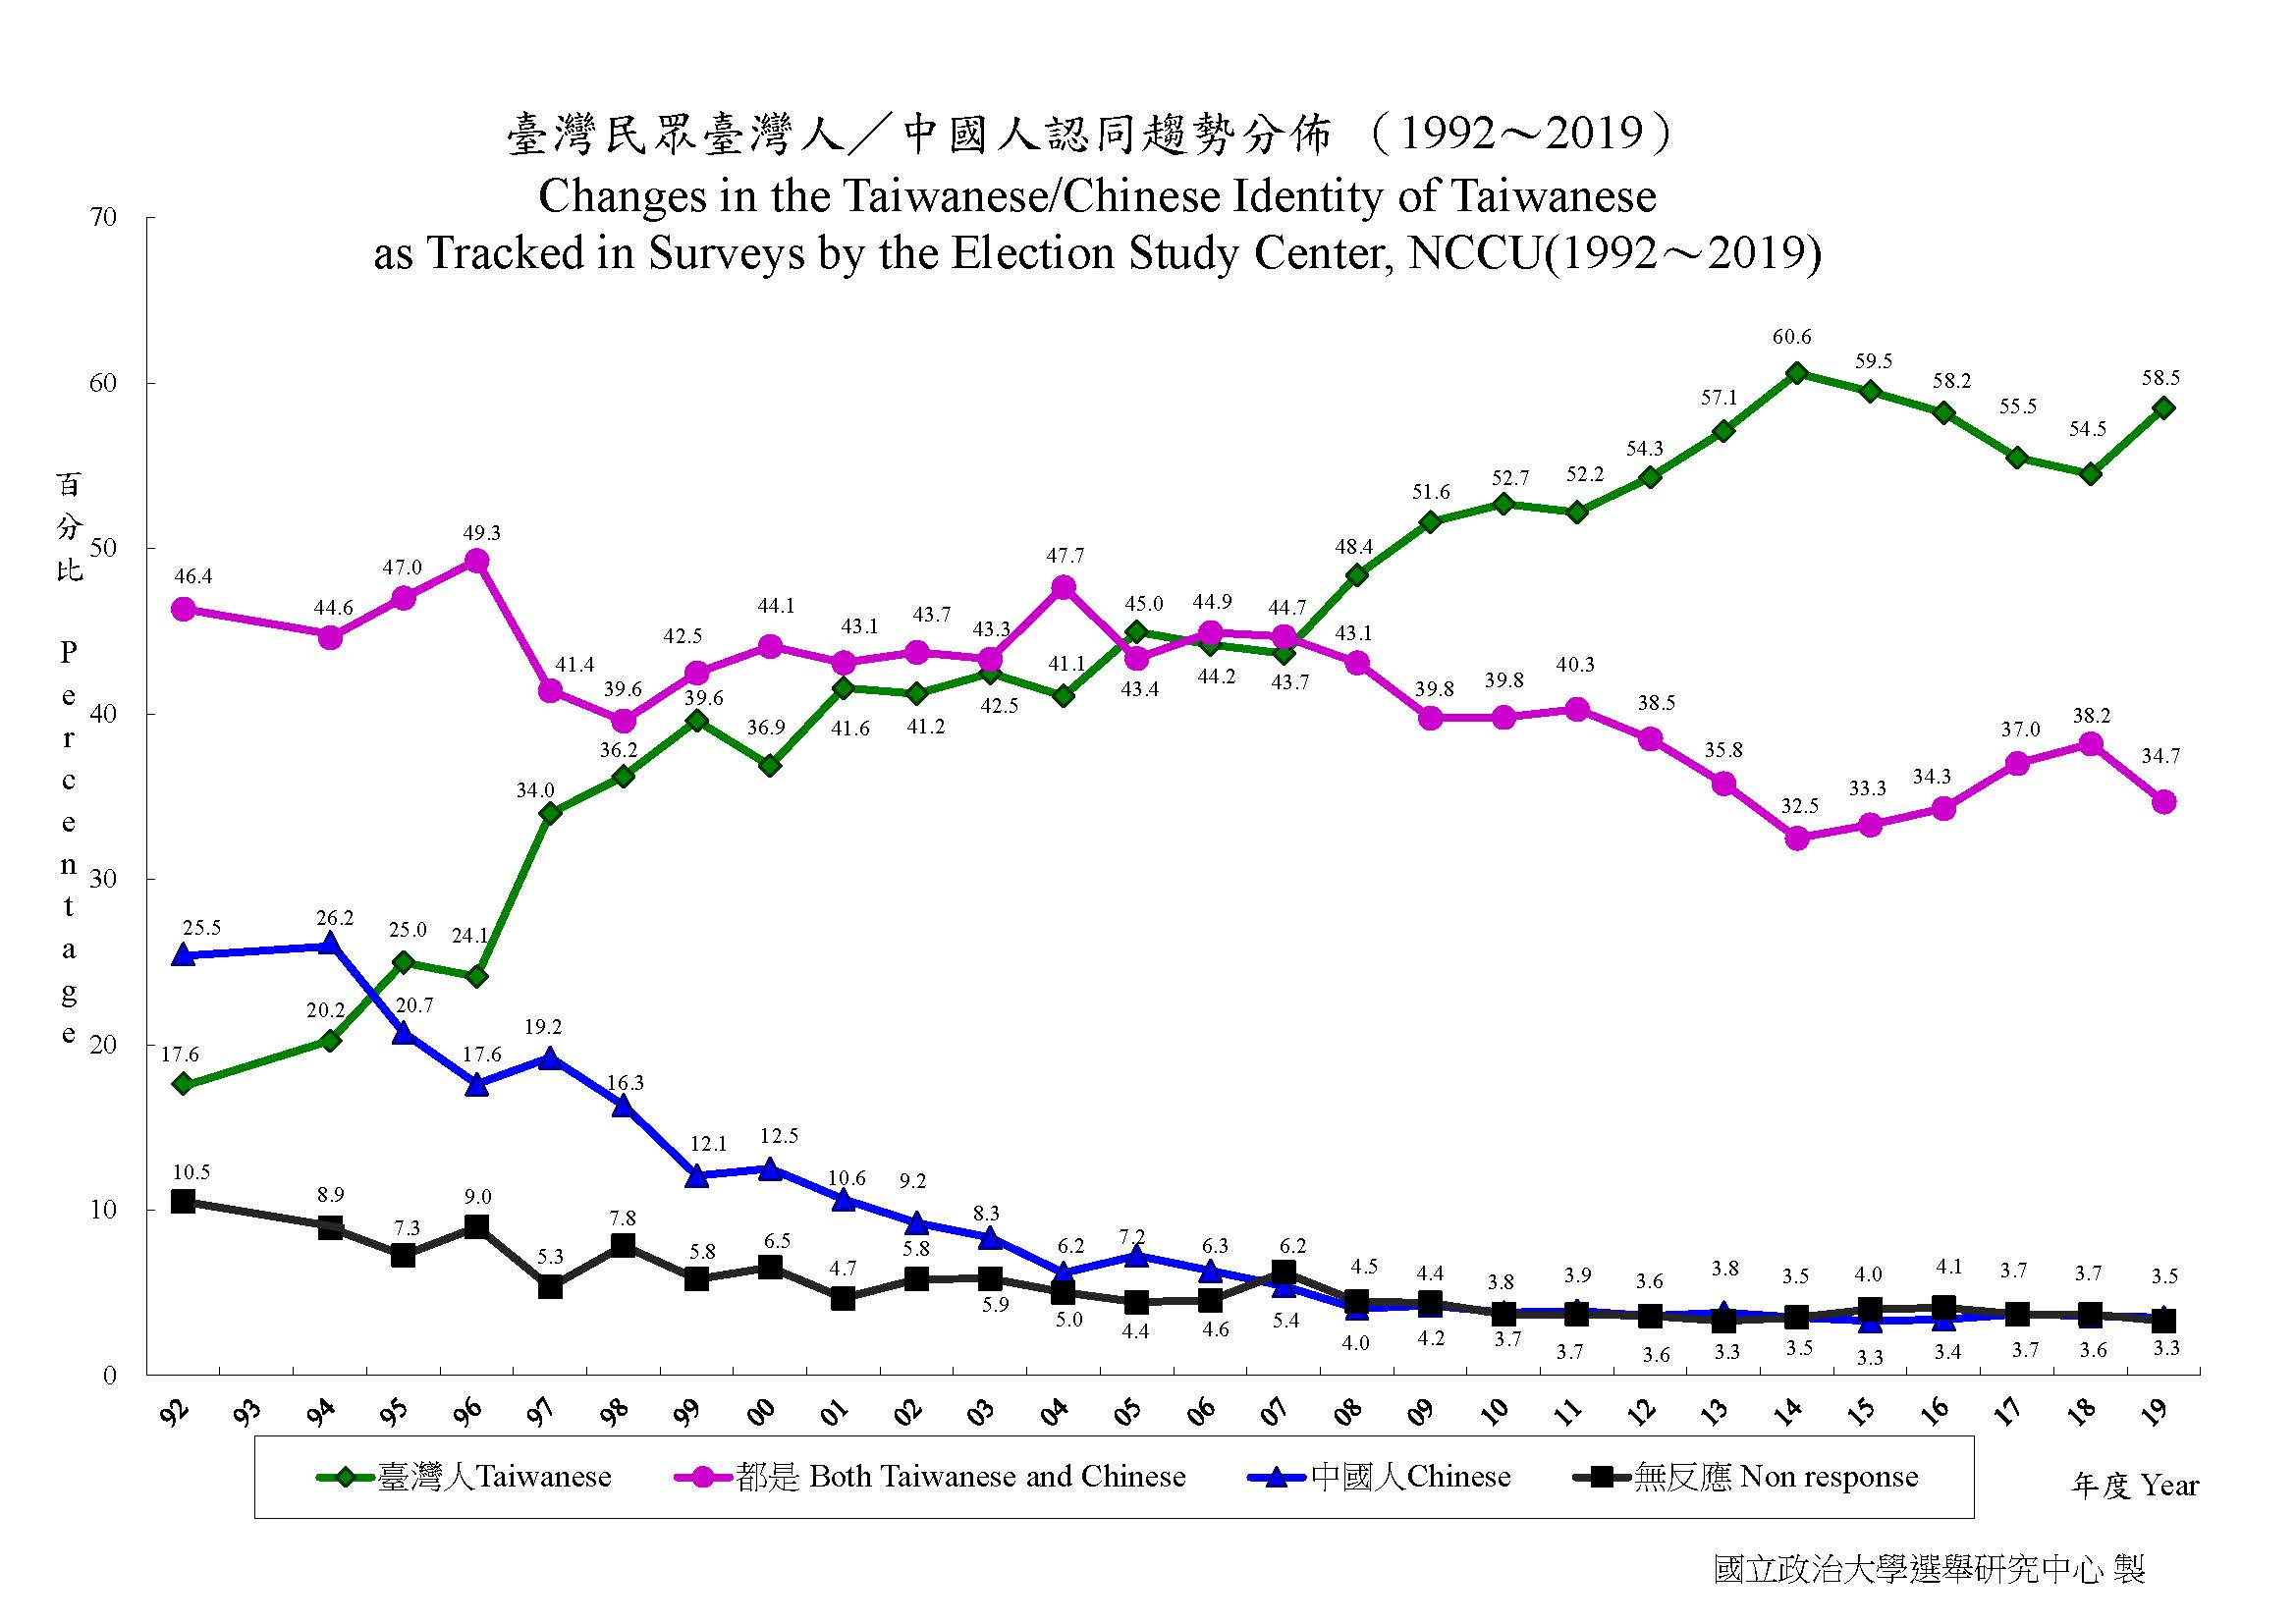 Graph showing changes in perceptions of Taiwanese identity from 1992 to 2019